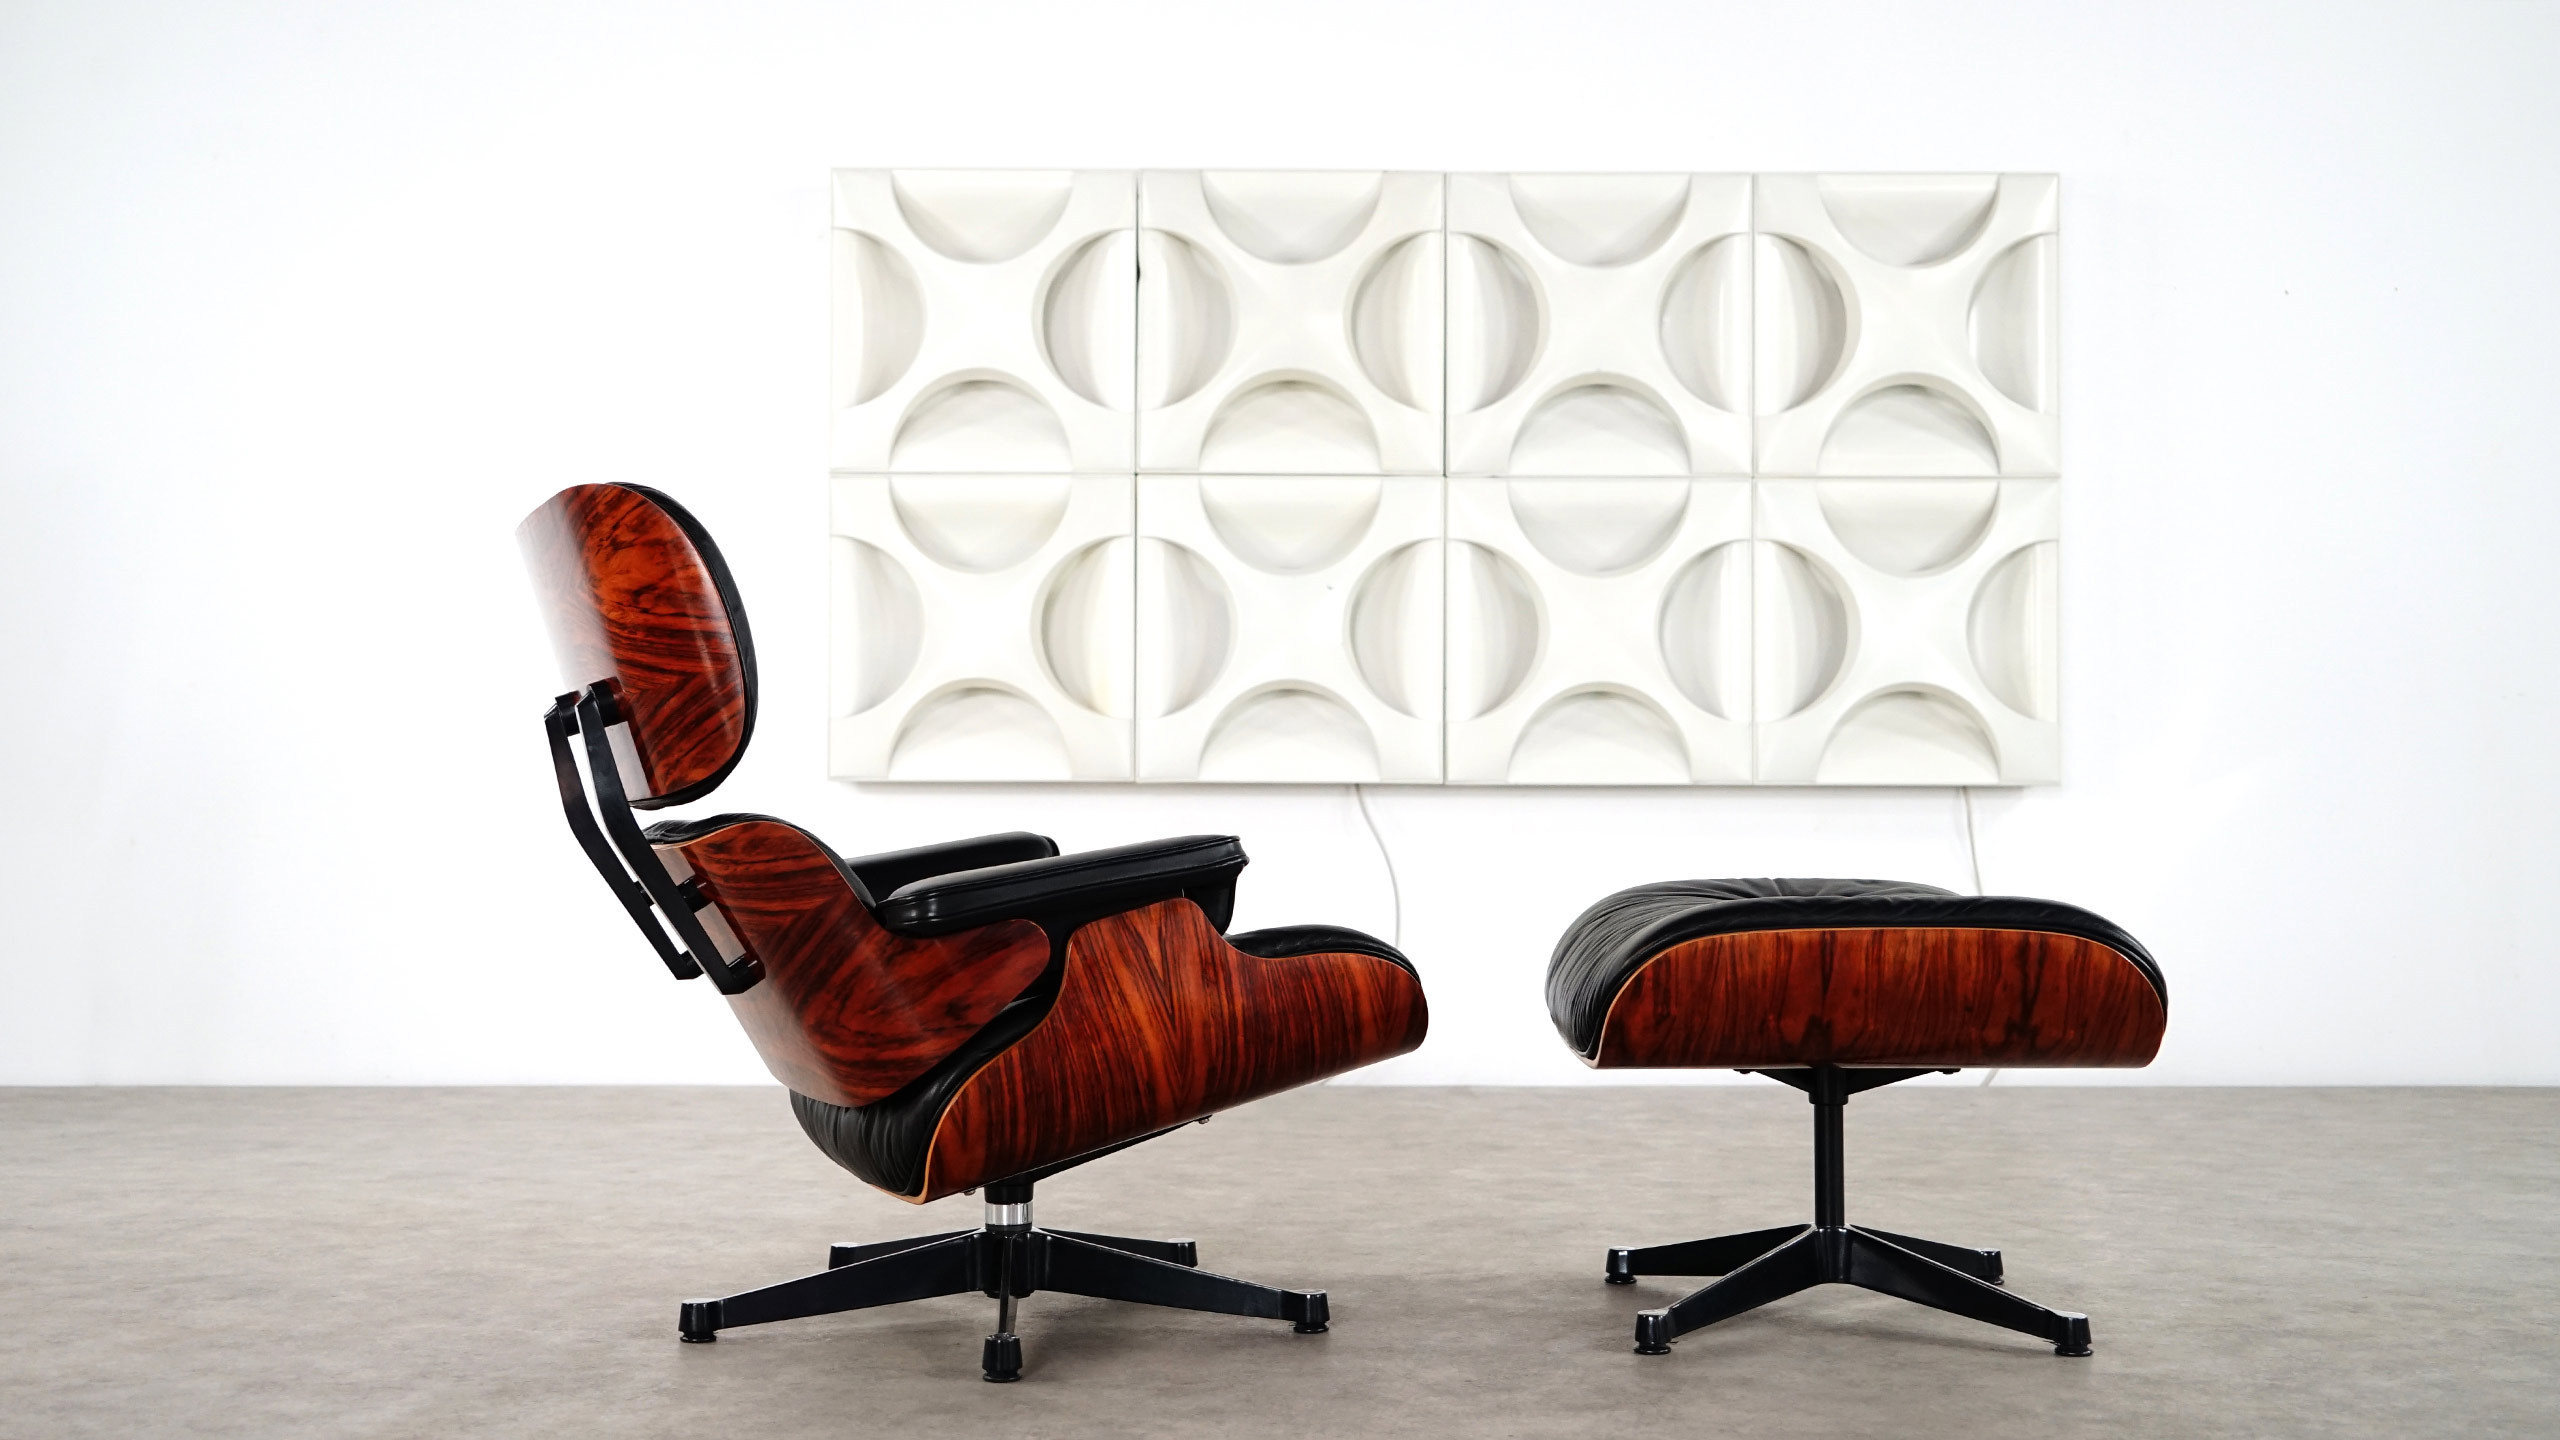 charles eames lounge chair ottoman by vitra. Black Bedroom Furniture Sets. Home Design Ideas